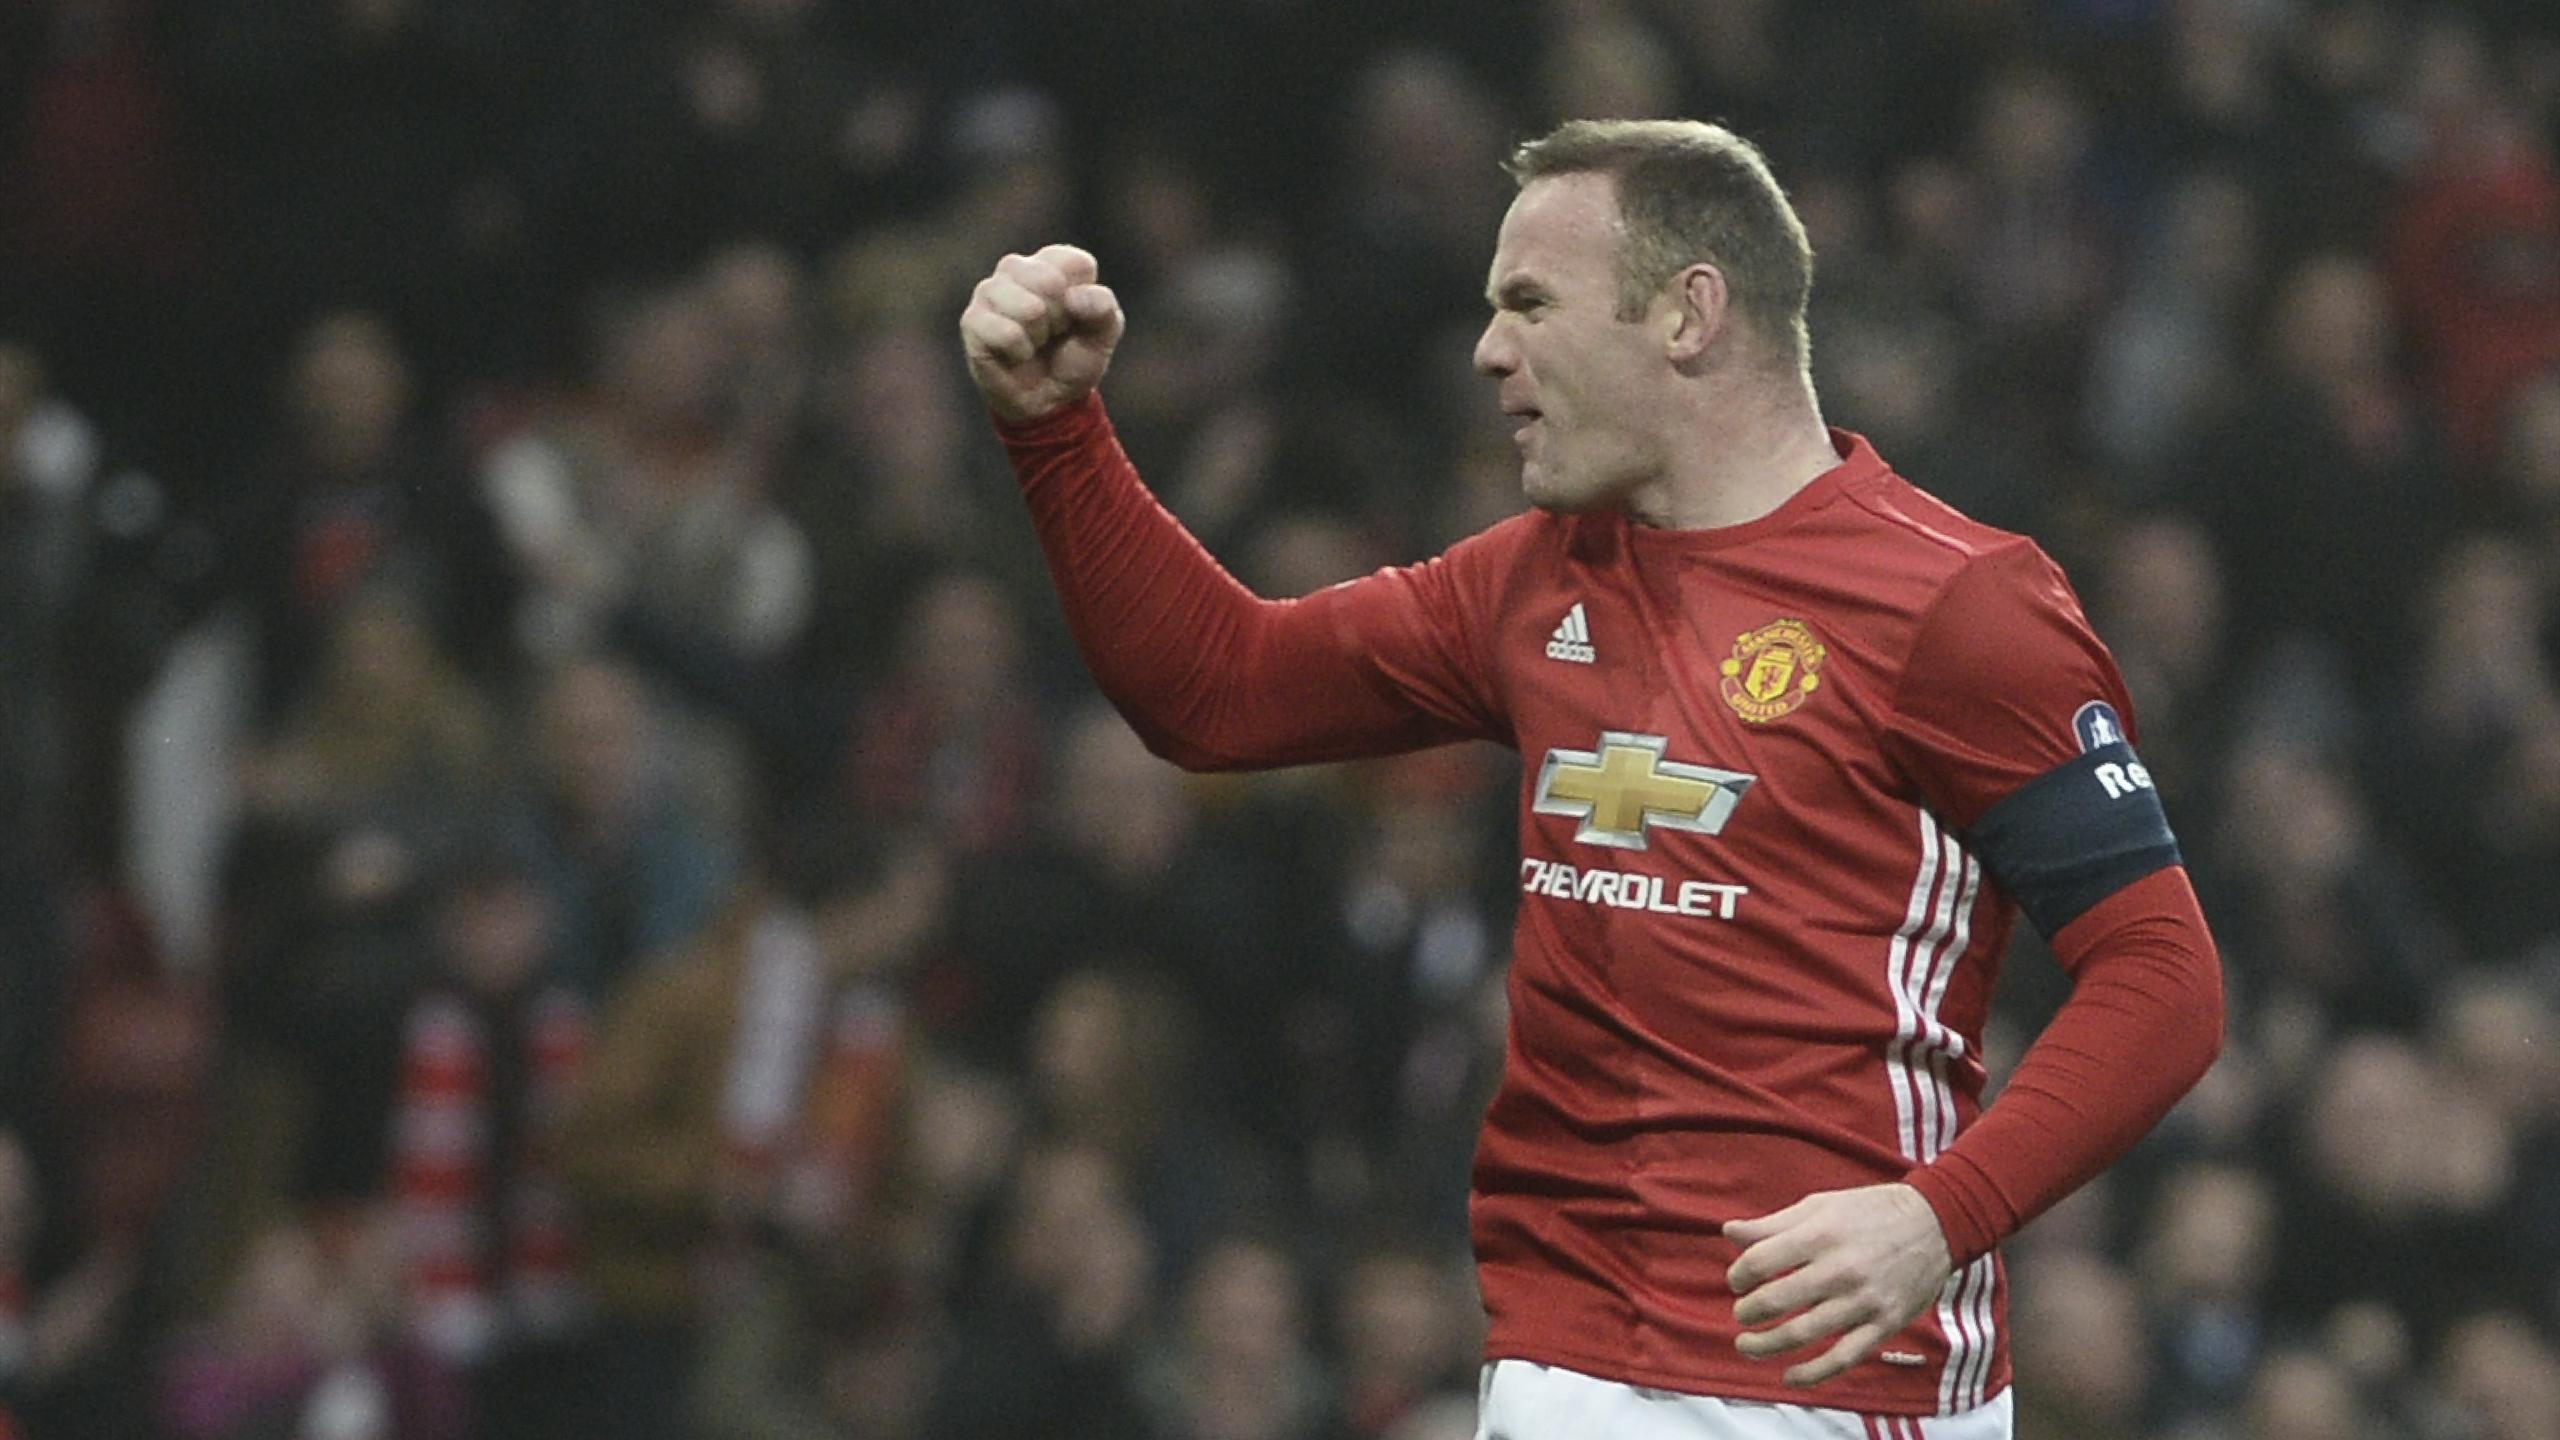 Manchester United's English striker Wayne Rooney celebrates scoring the opening goal